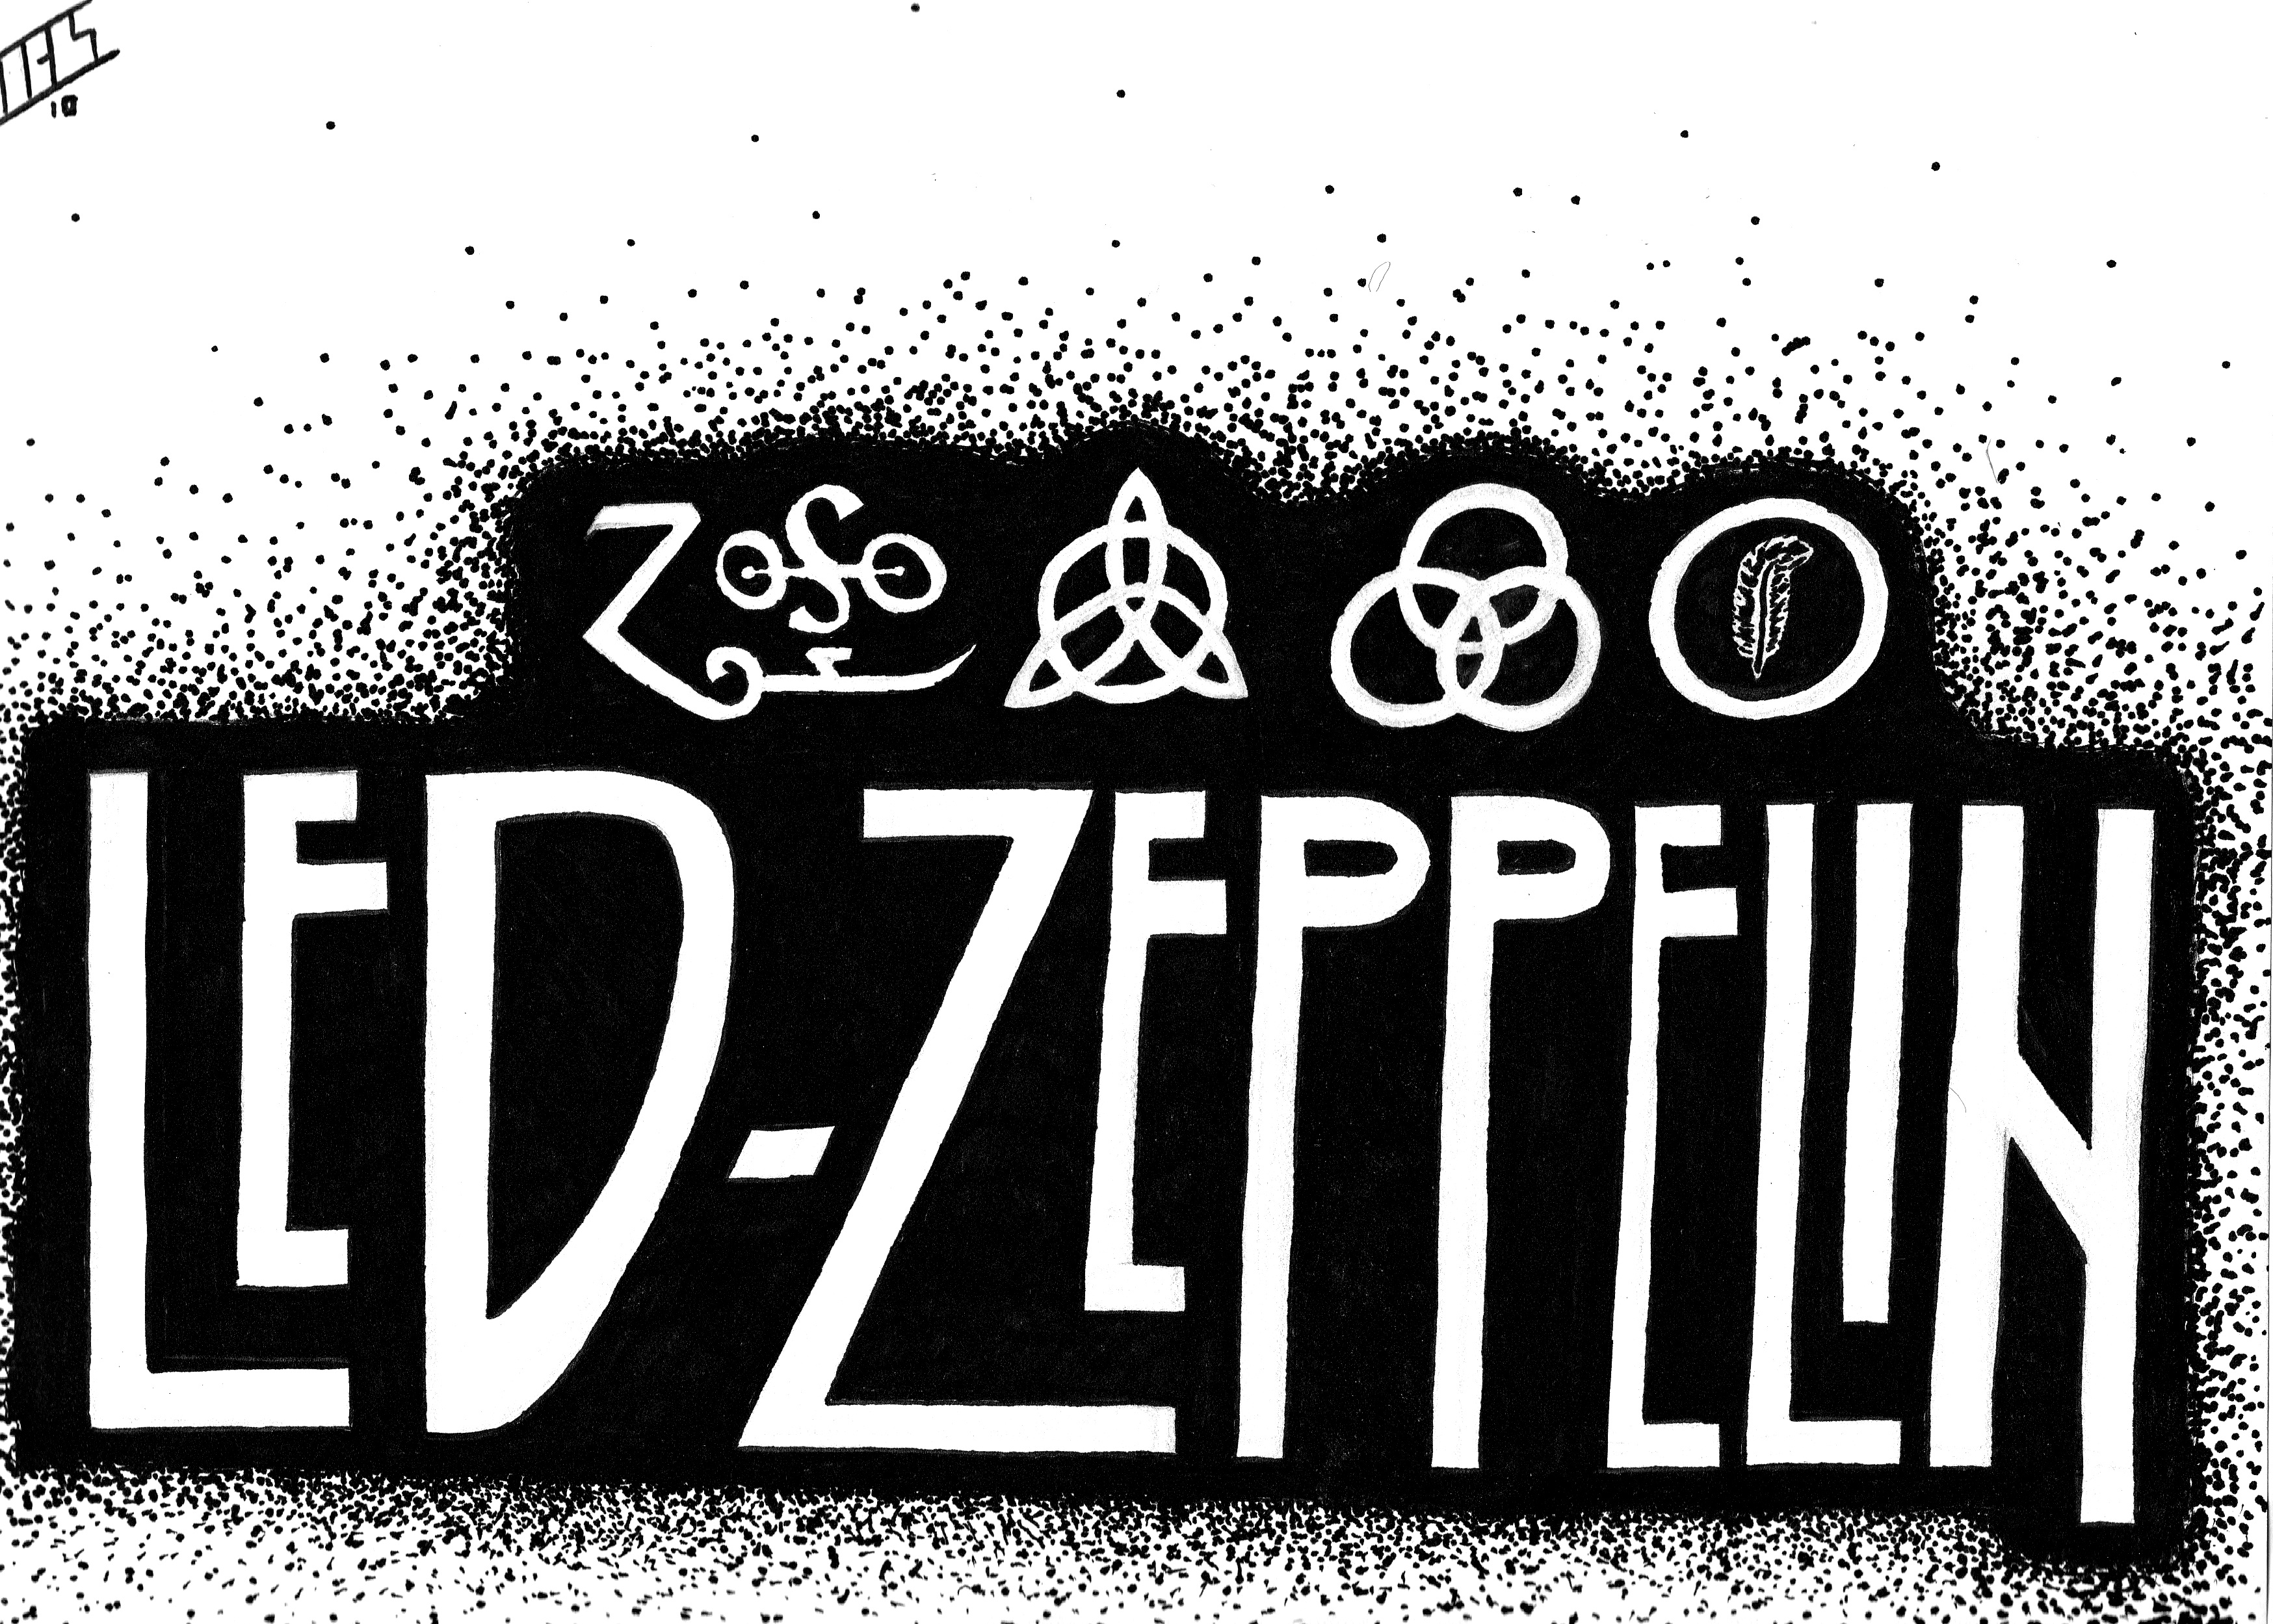 Led Zeppelin hard rock classic groups bands jimmy page robert plant 3496x2498